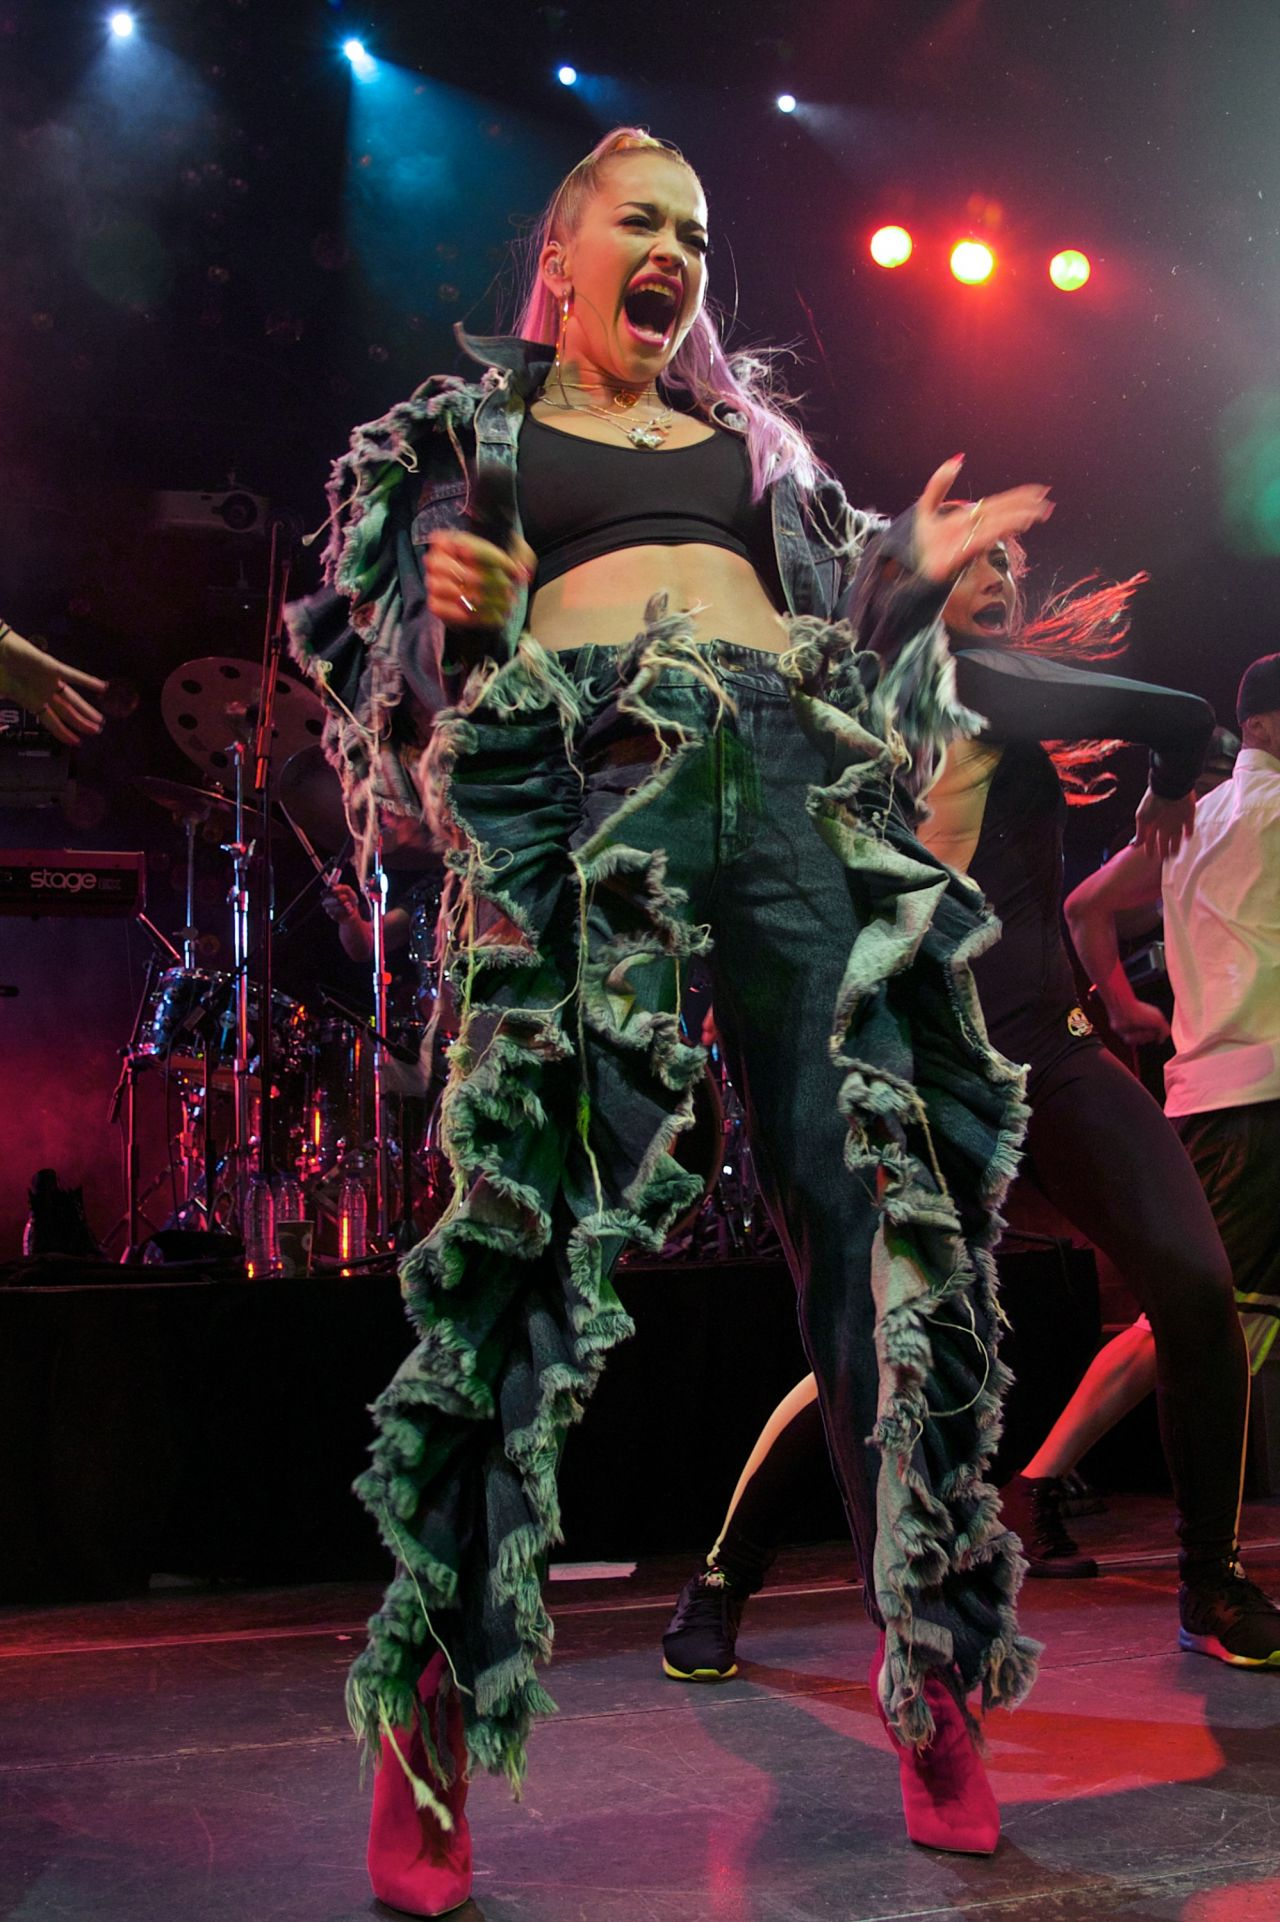 Rita Ora Performs at Joy Eslava in Madrid, Spain - July 2014